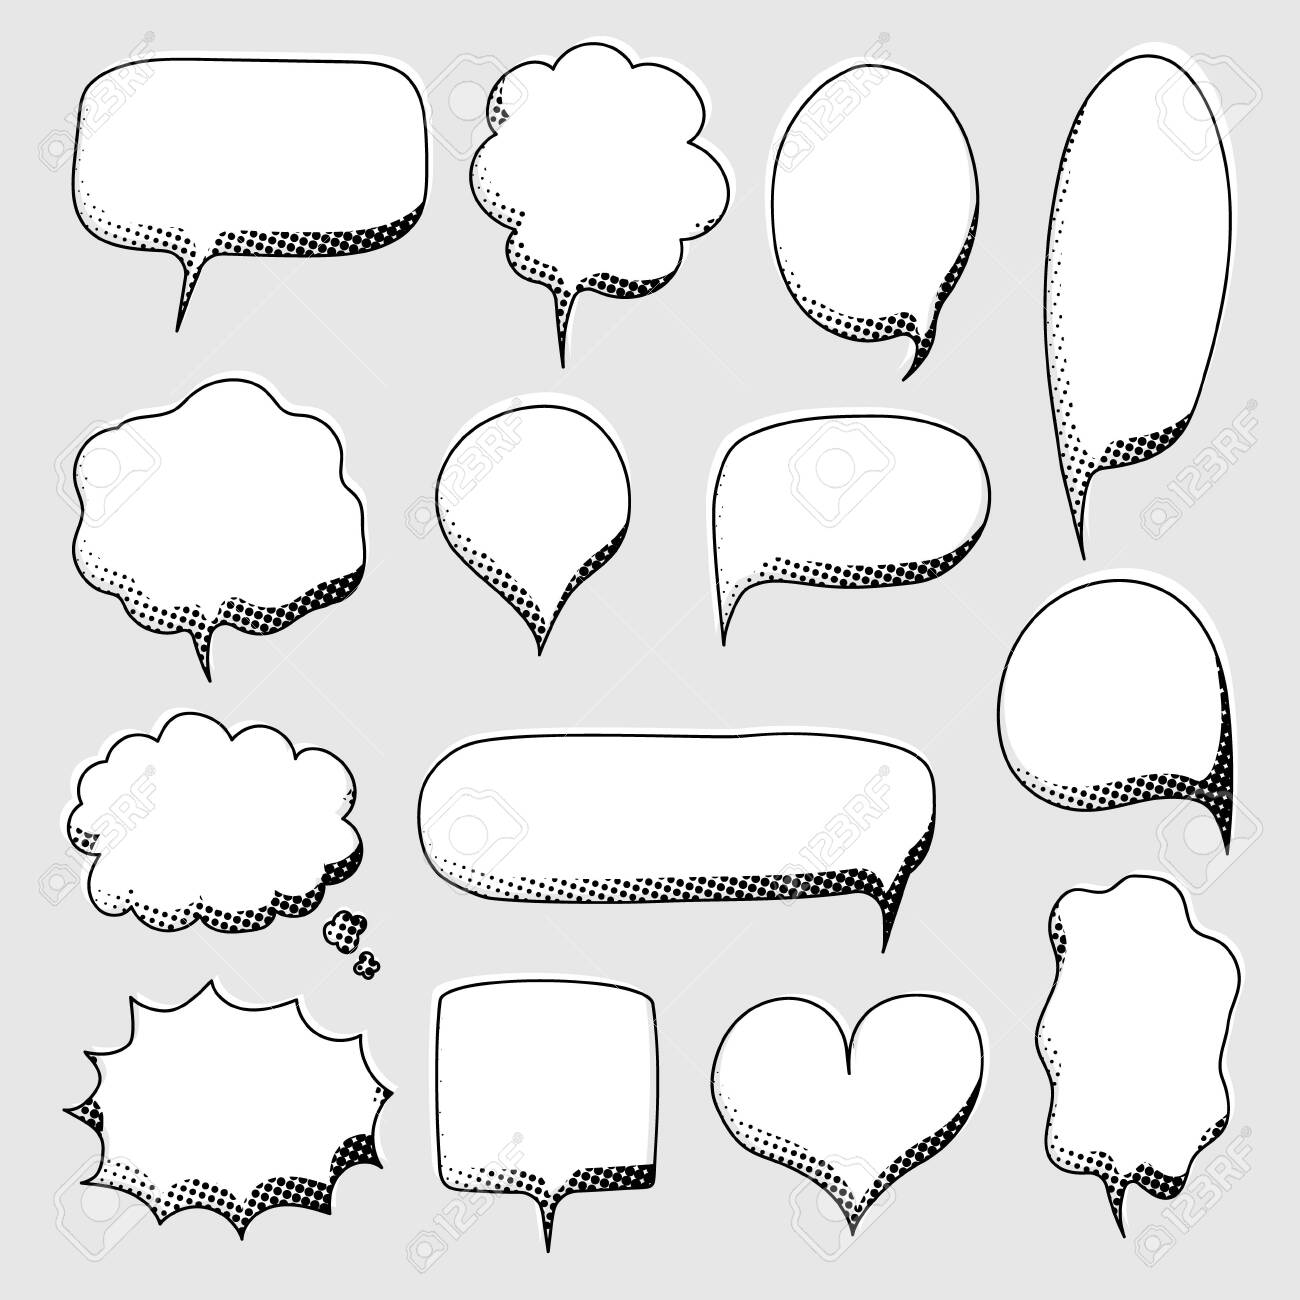 collection set of hand drawn pop art polka dots halftone, blank speech bubble balloon, black and white color, shout, think, speak, talk, text box, banner, flat, design, vector illustration - 158519393